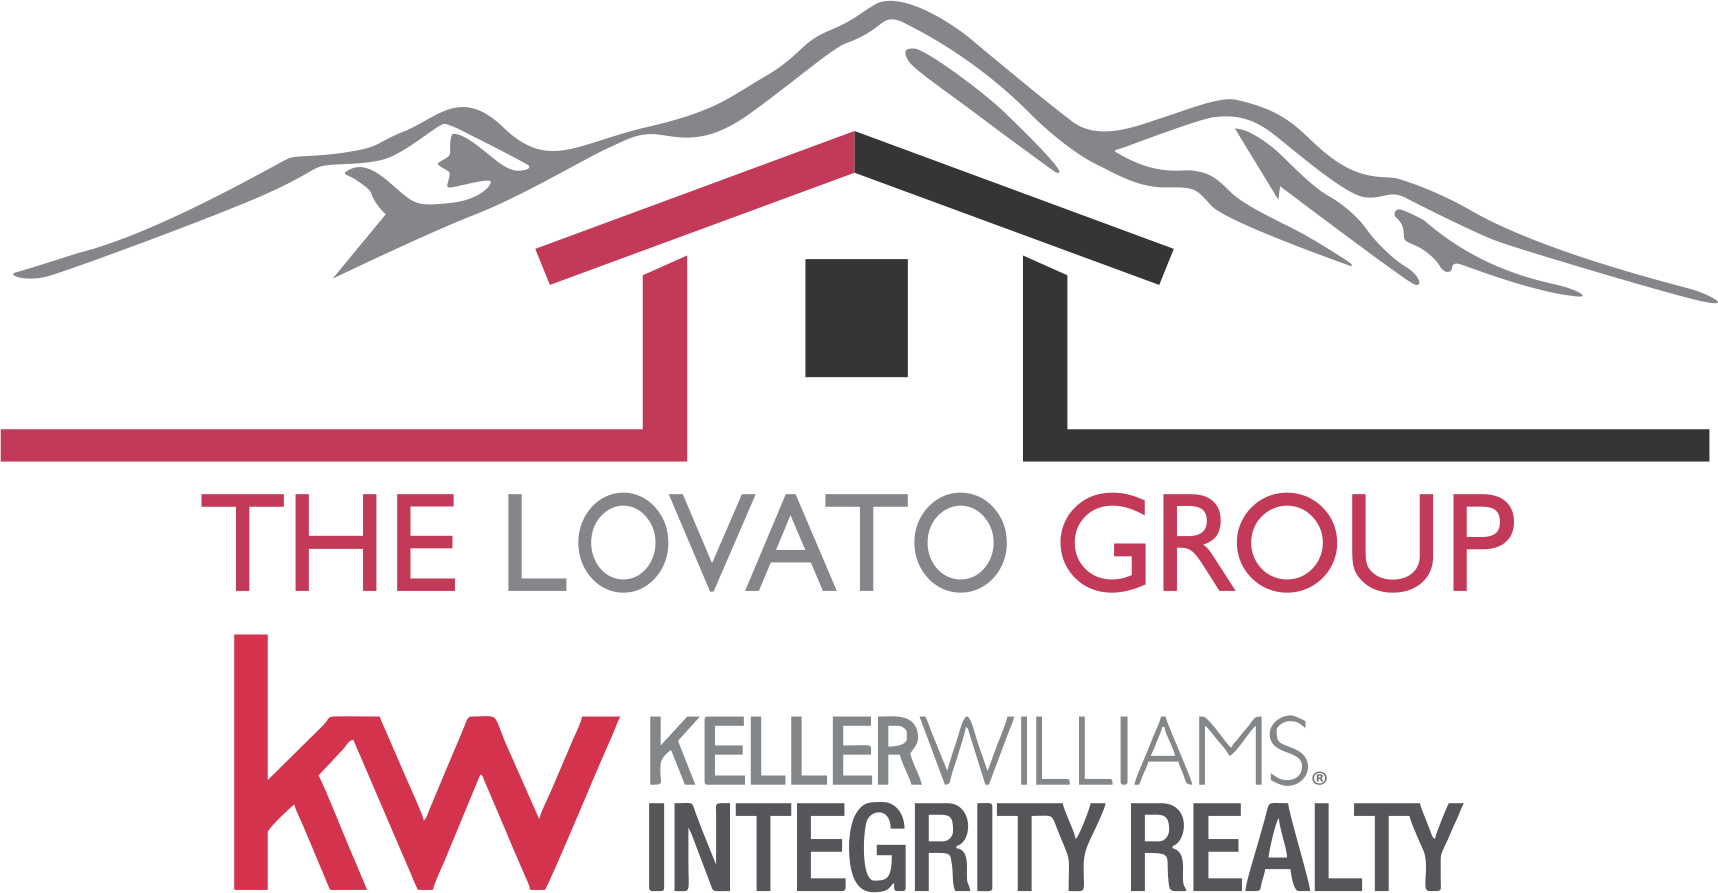 The Lovato Group logo